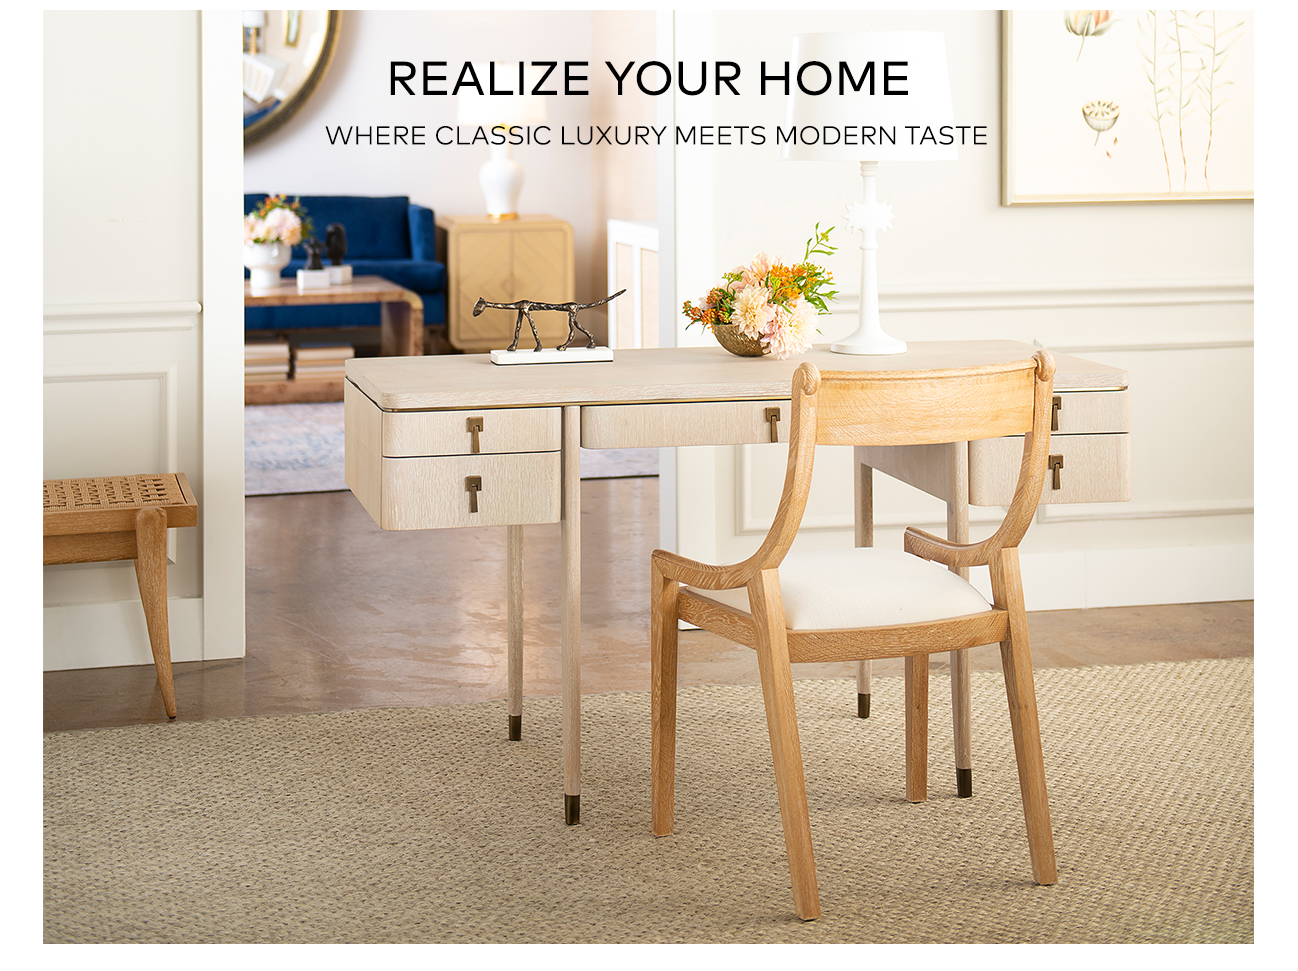 Realize Your Home